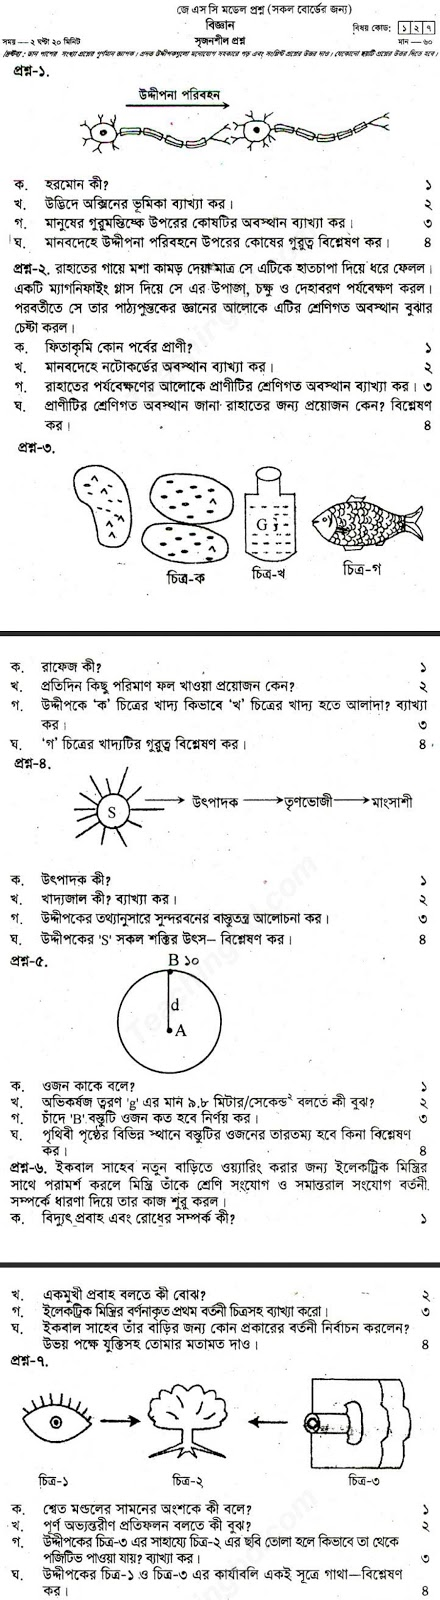 Jsc General Science Suggestion